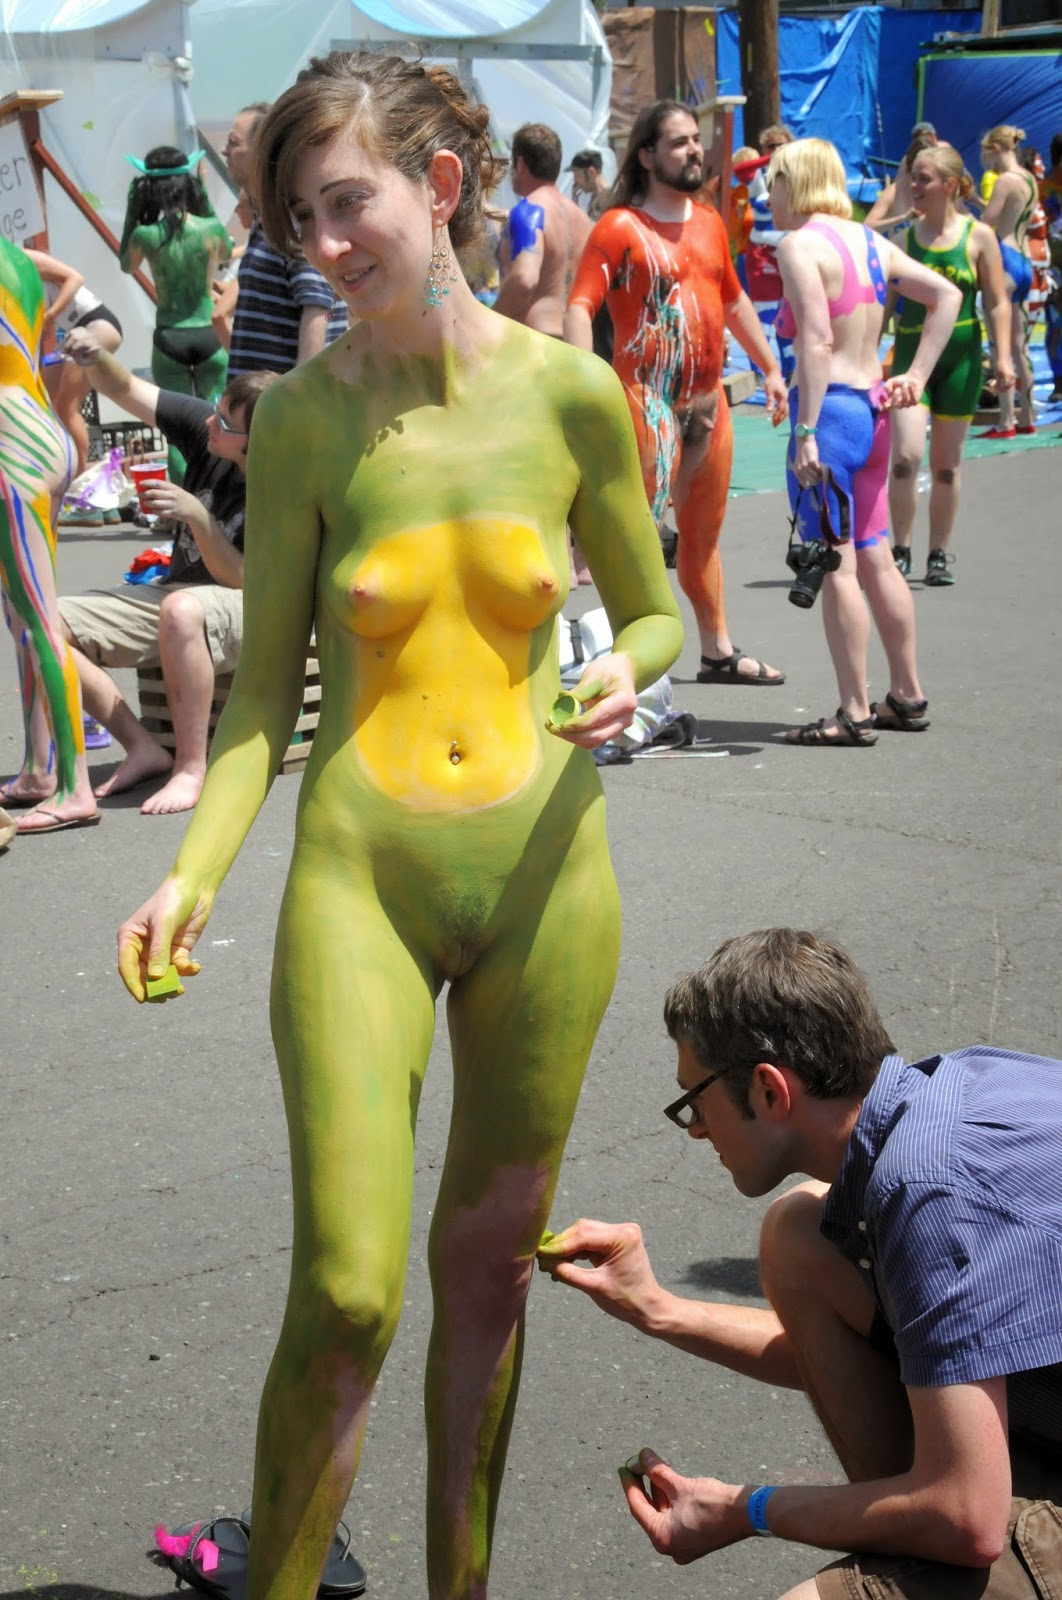 Congratulate, very nude women body paint public sorry